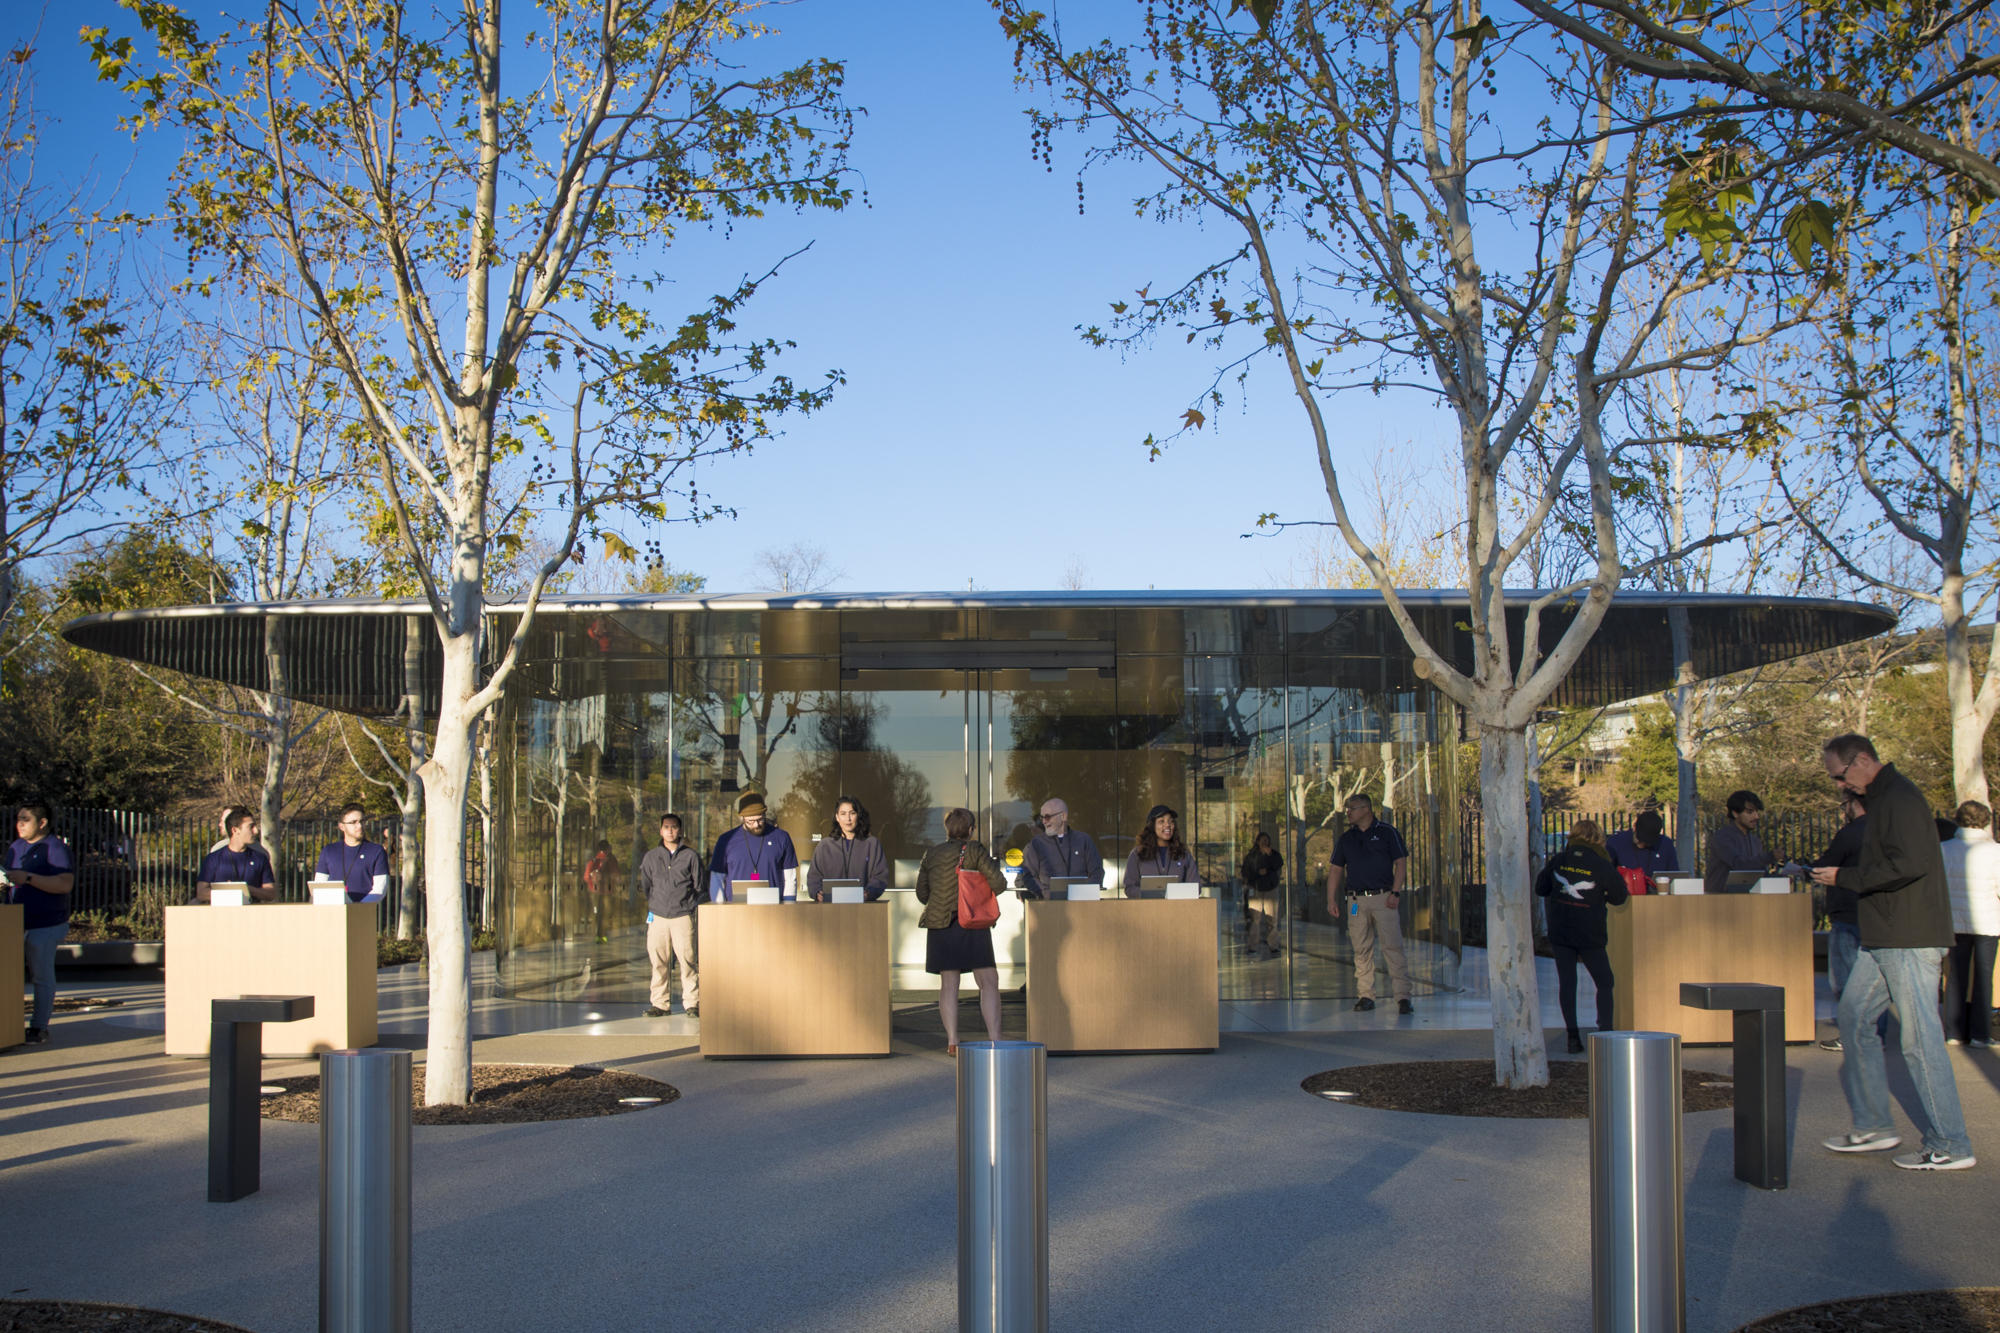 Apple's Tuesday shareholder meeting was the first to take place on the company's new Apple Park campus.